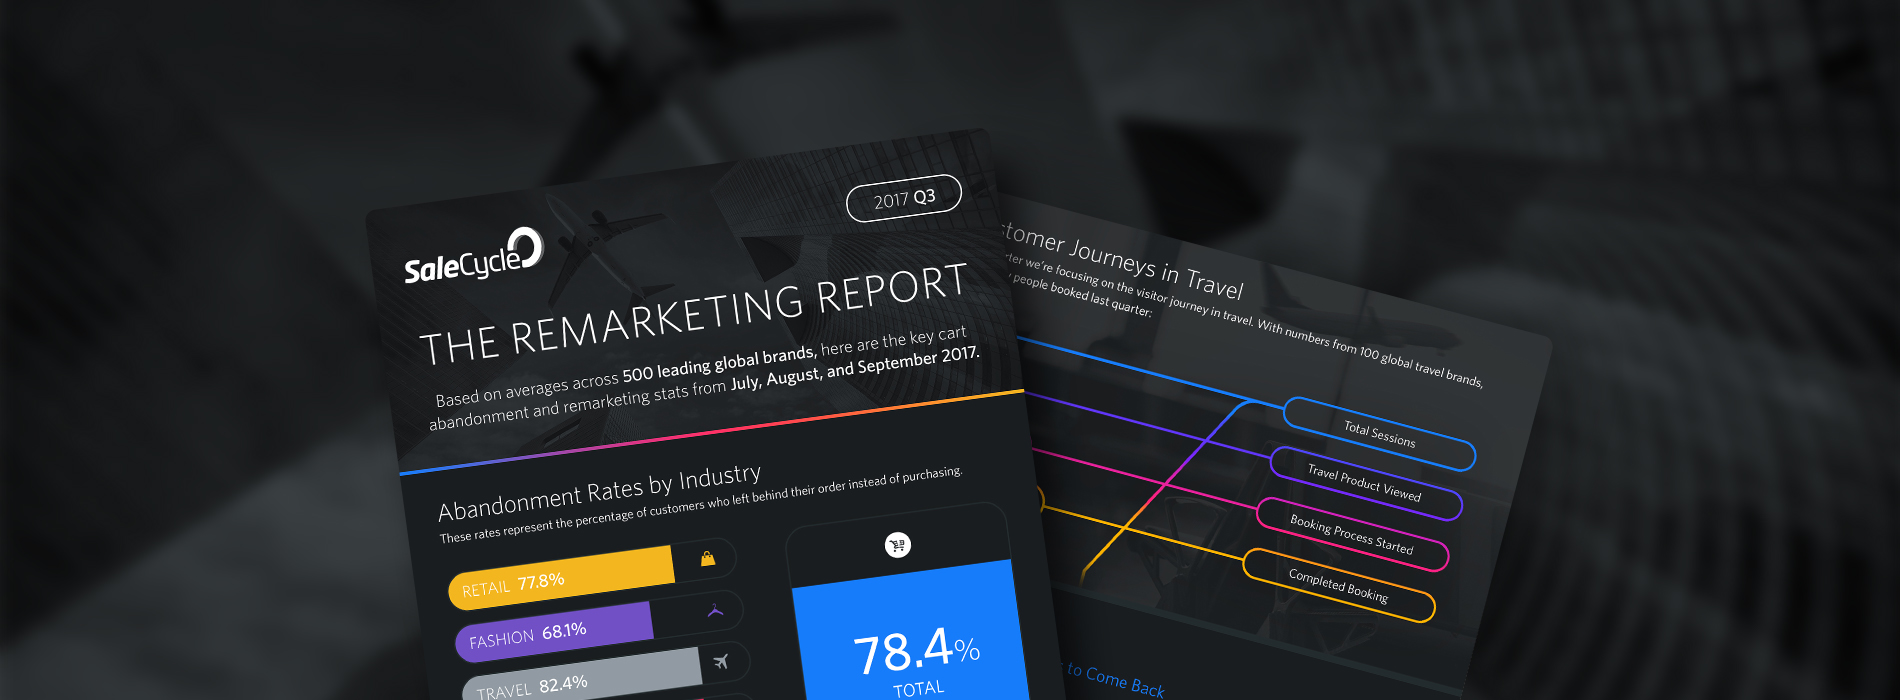 [Infographic] The Remarketing Report – Q3 2017